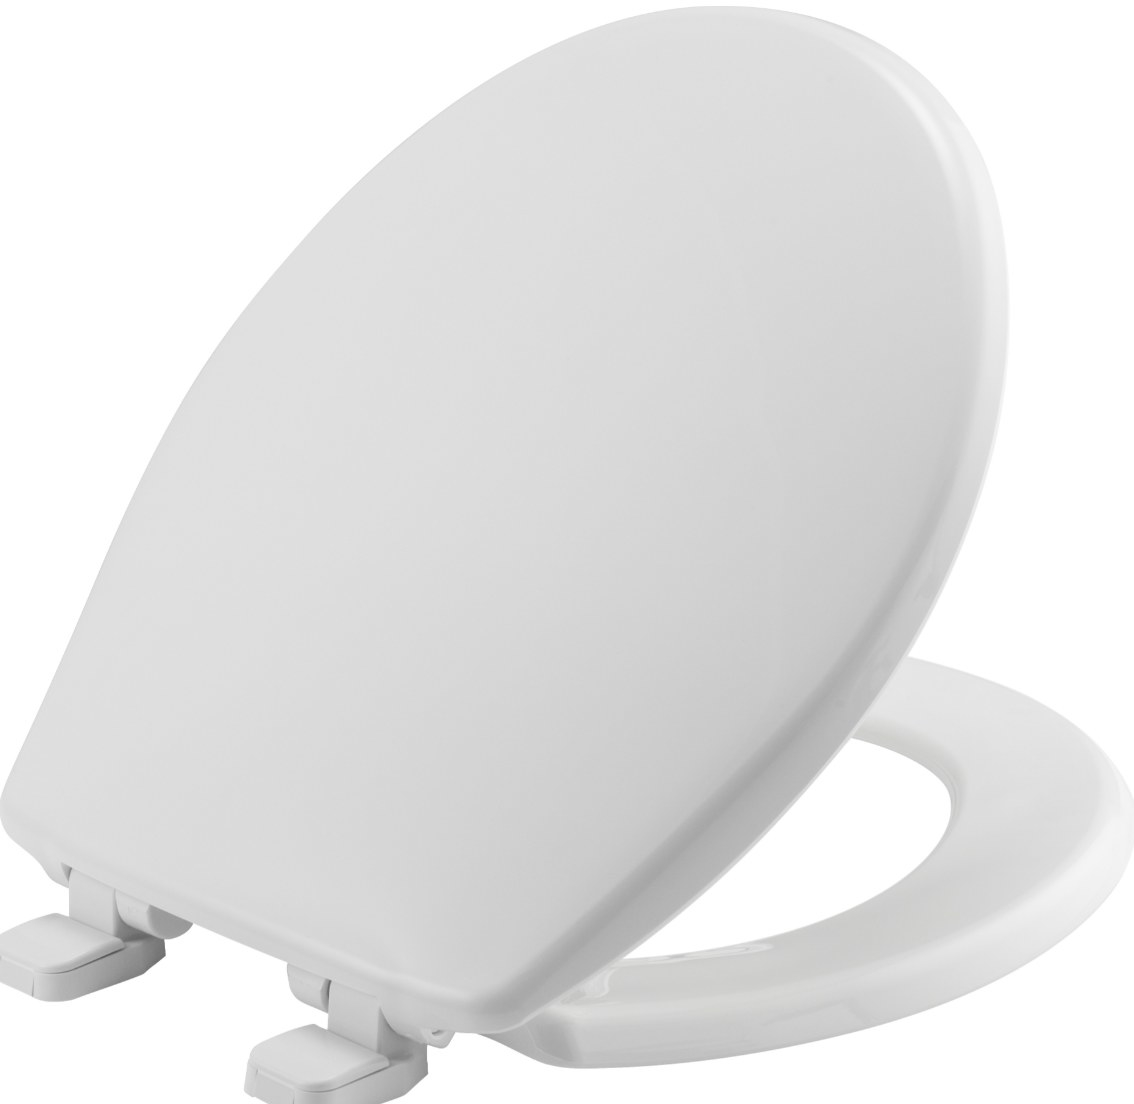 The slow close toilet seat cover in white